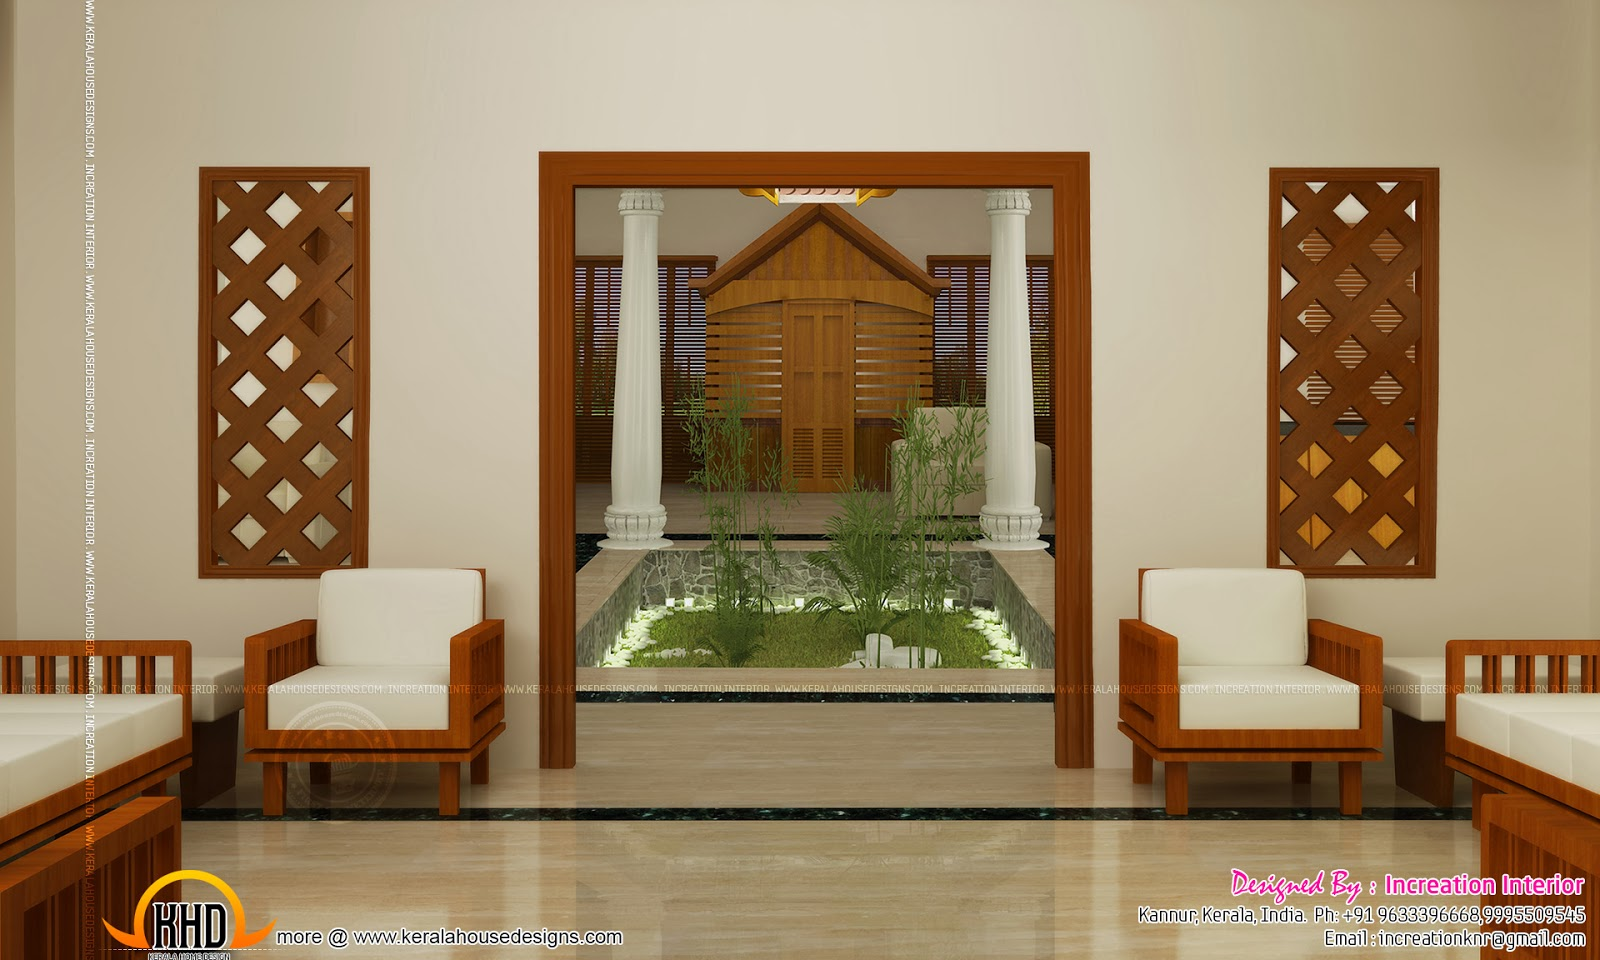 Kerala home design with nadumuttam images indian interior - Indian house interior designs ...